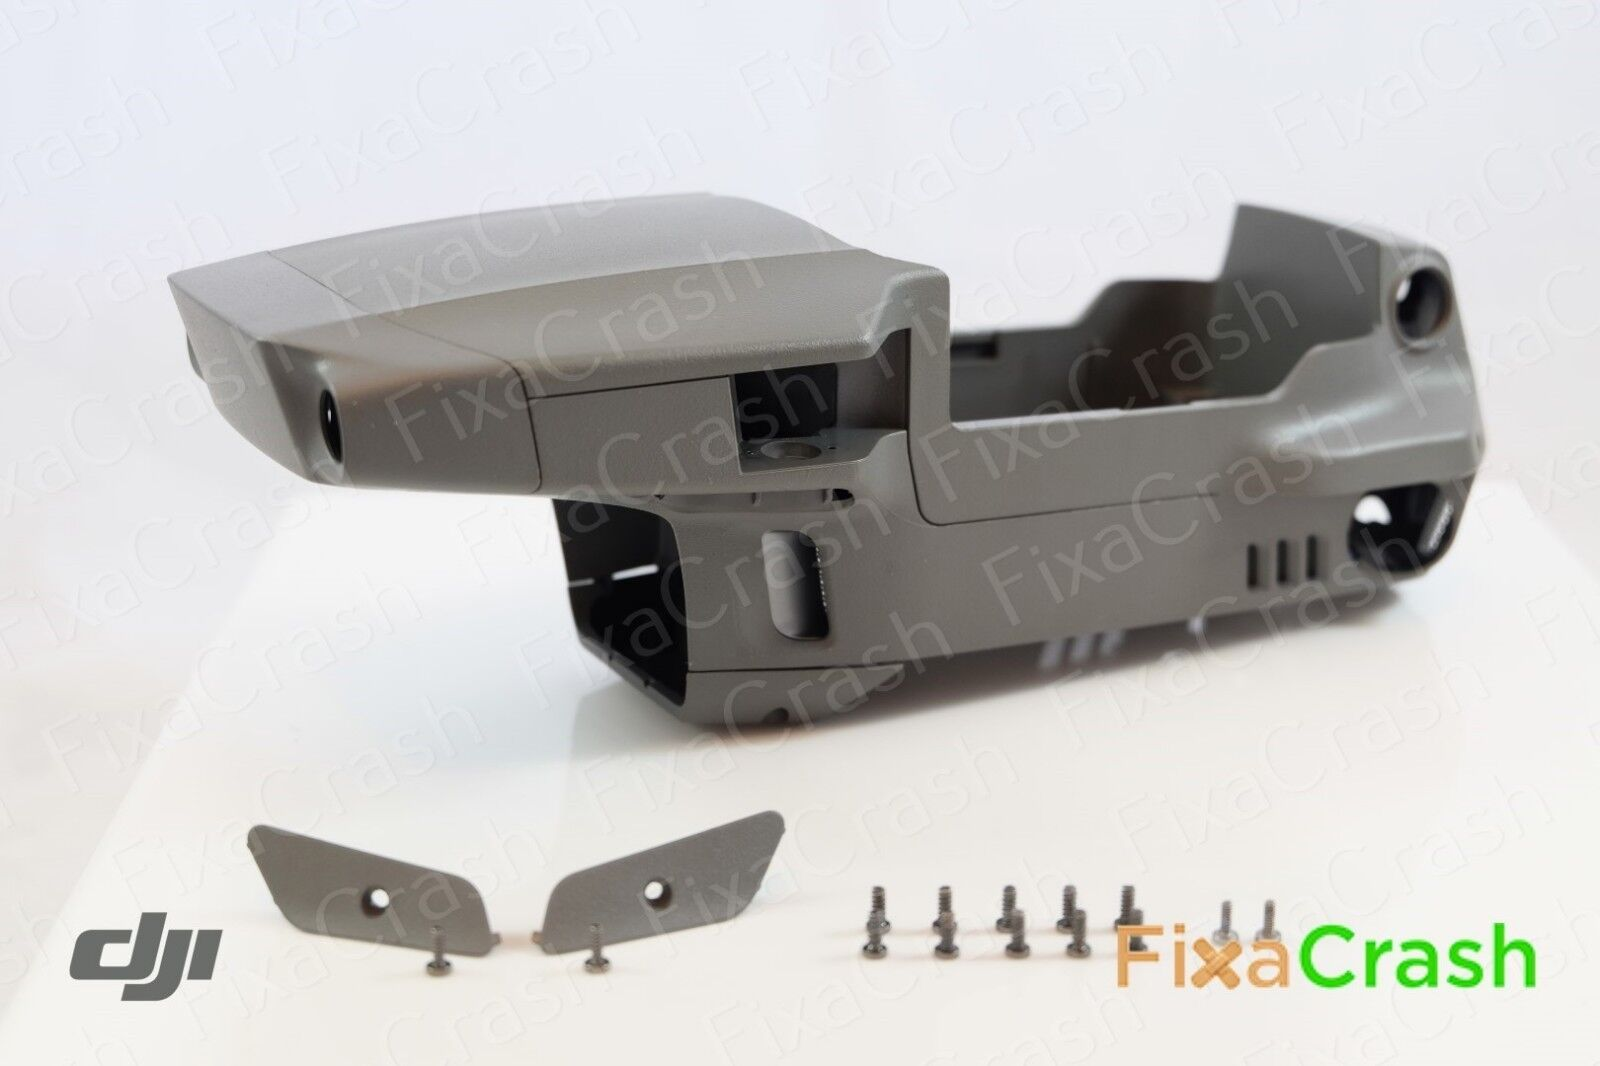 Genuine DJI Mavic 2 Pro/Zoom Shell Body and Cover - Spare replacement part